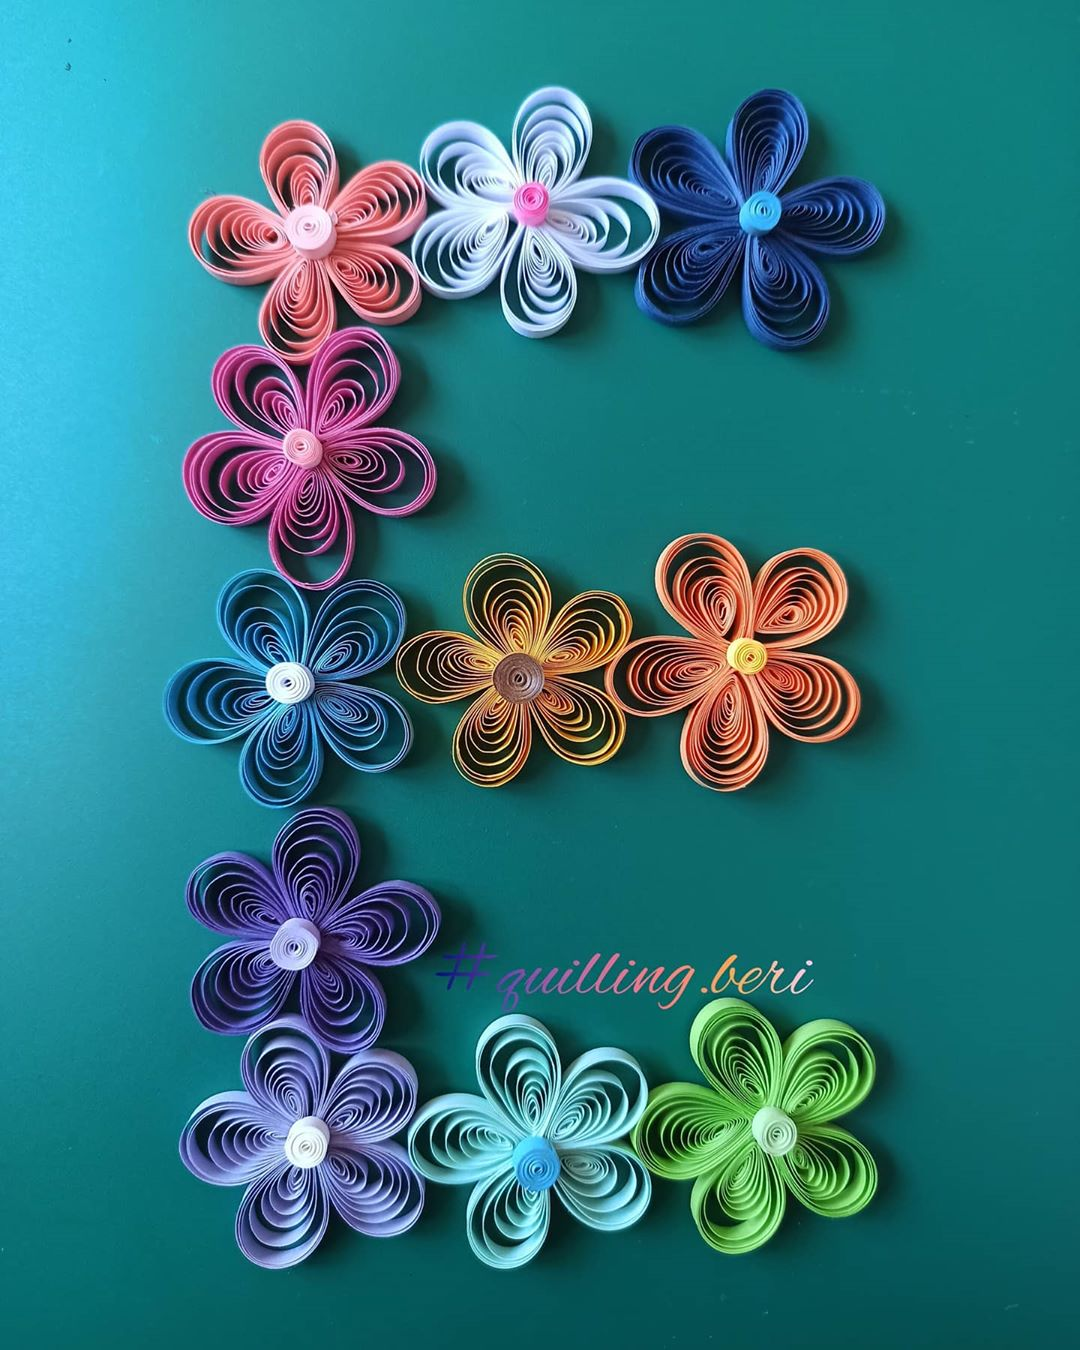 Quilling Letter E from Flowers